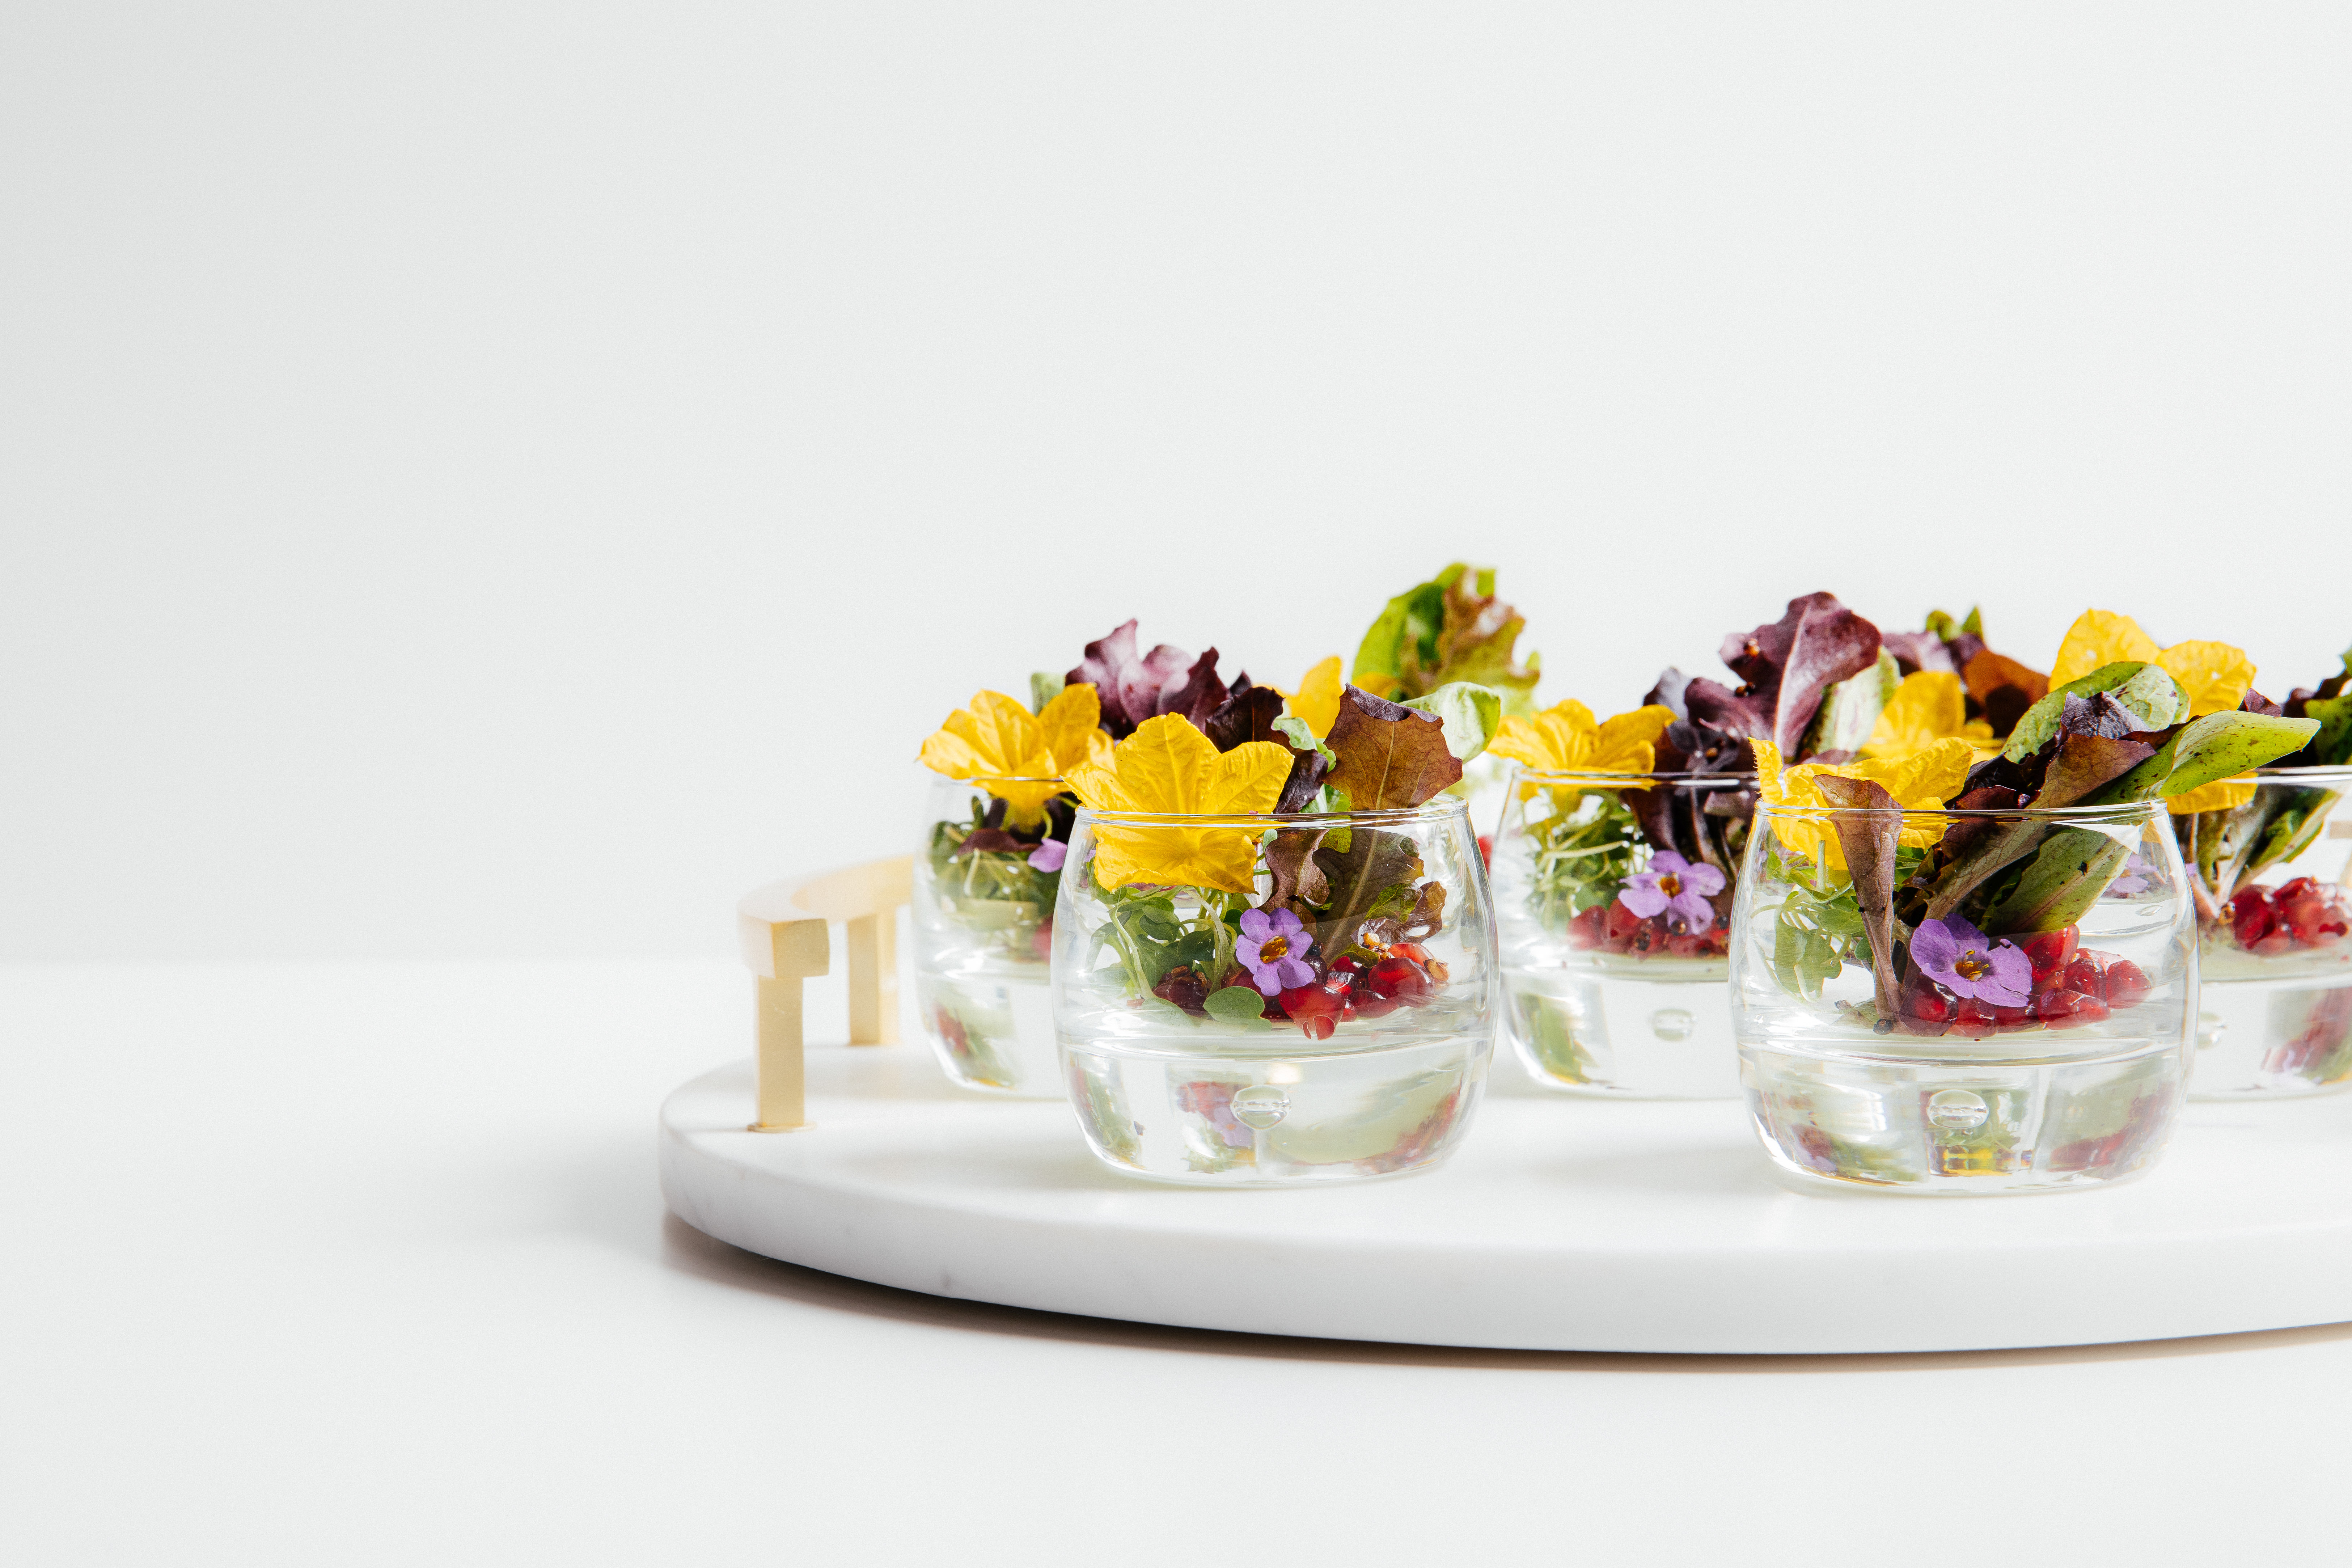 Wolfgang Puck Will Treat Governors Ball Guests to Innovative Fare That's 70% Vegan